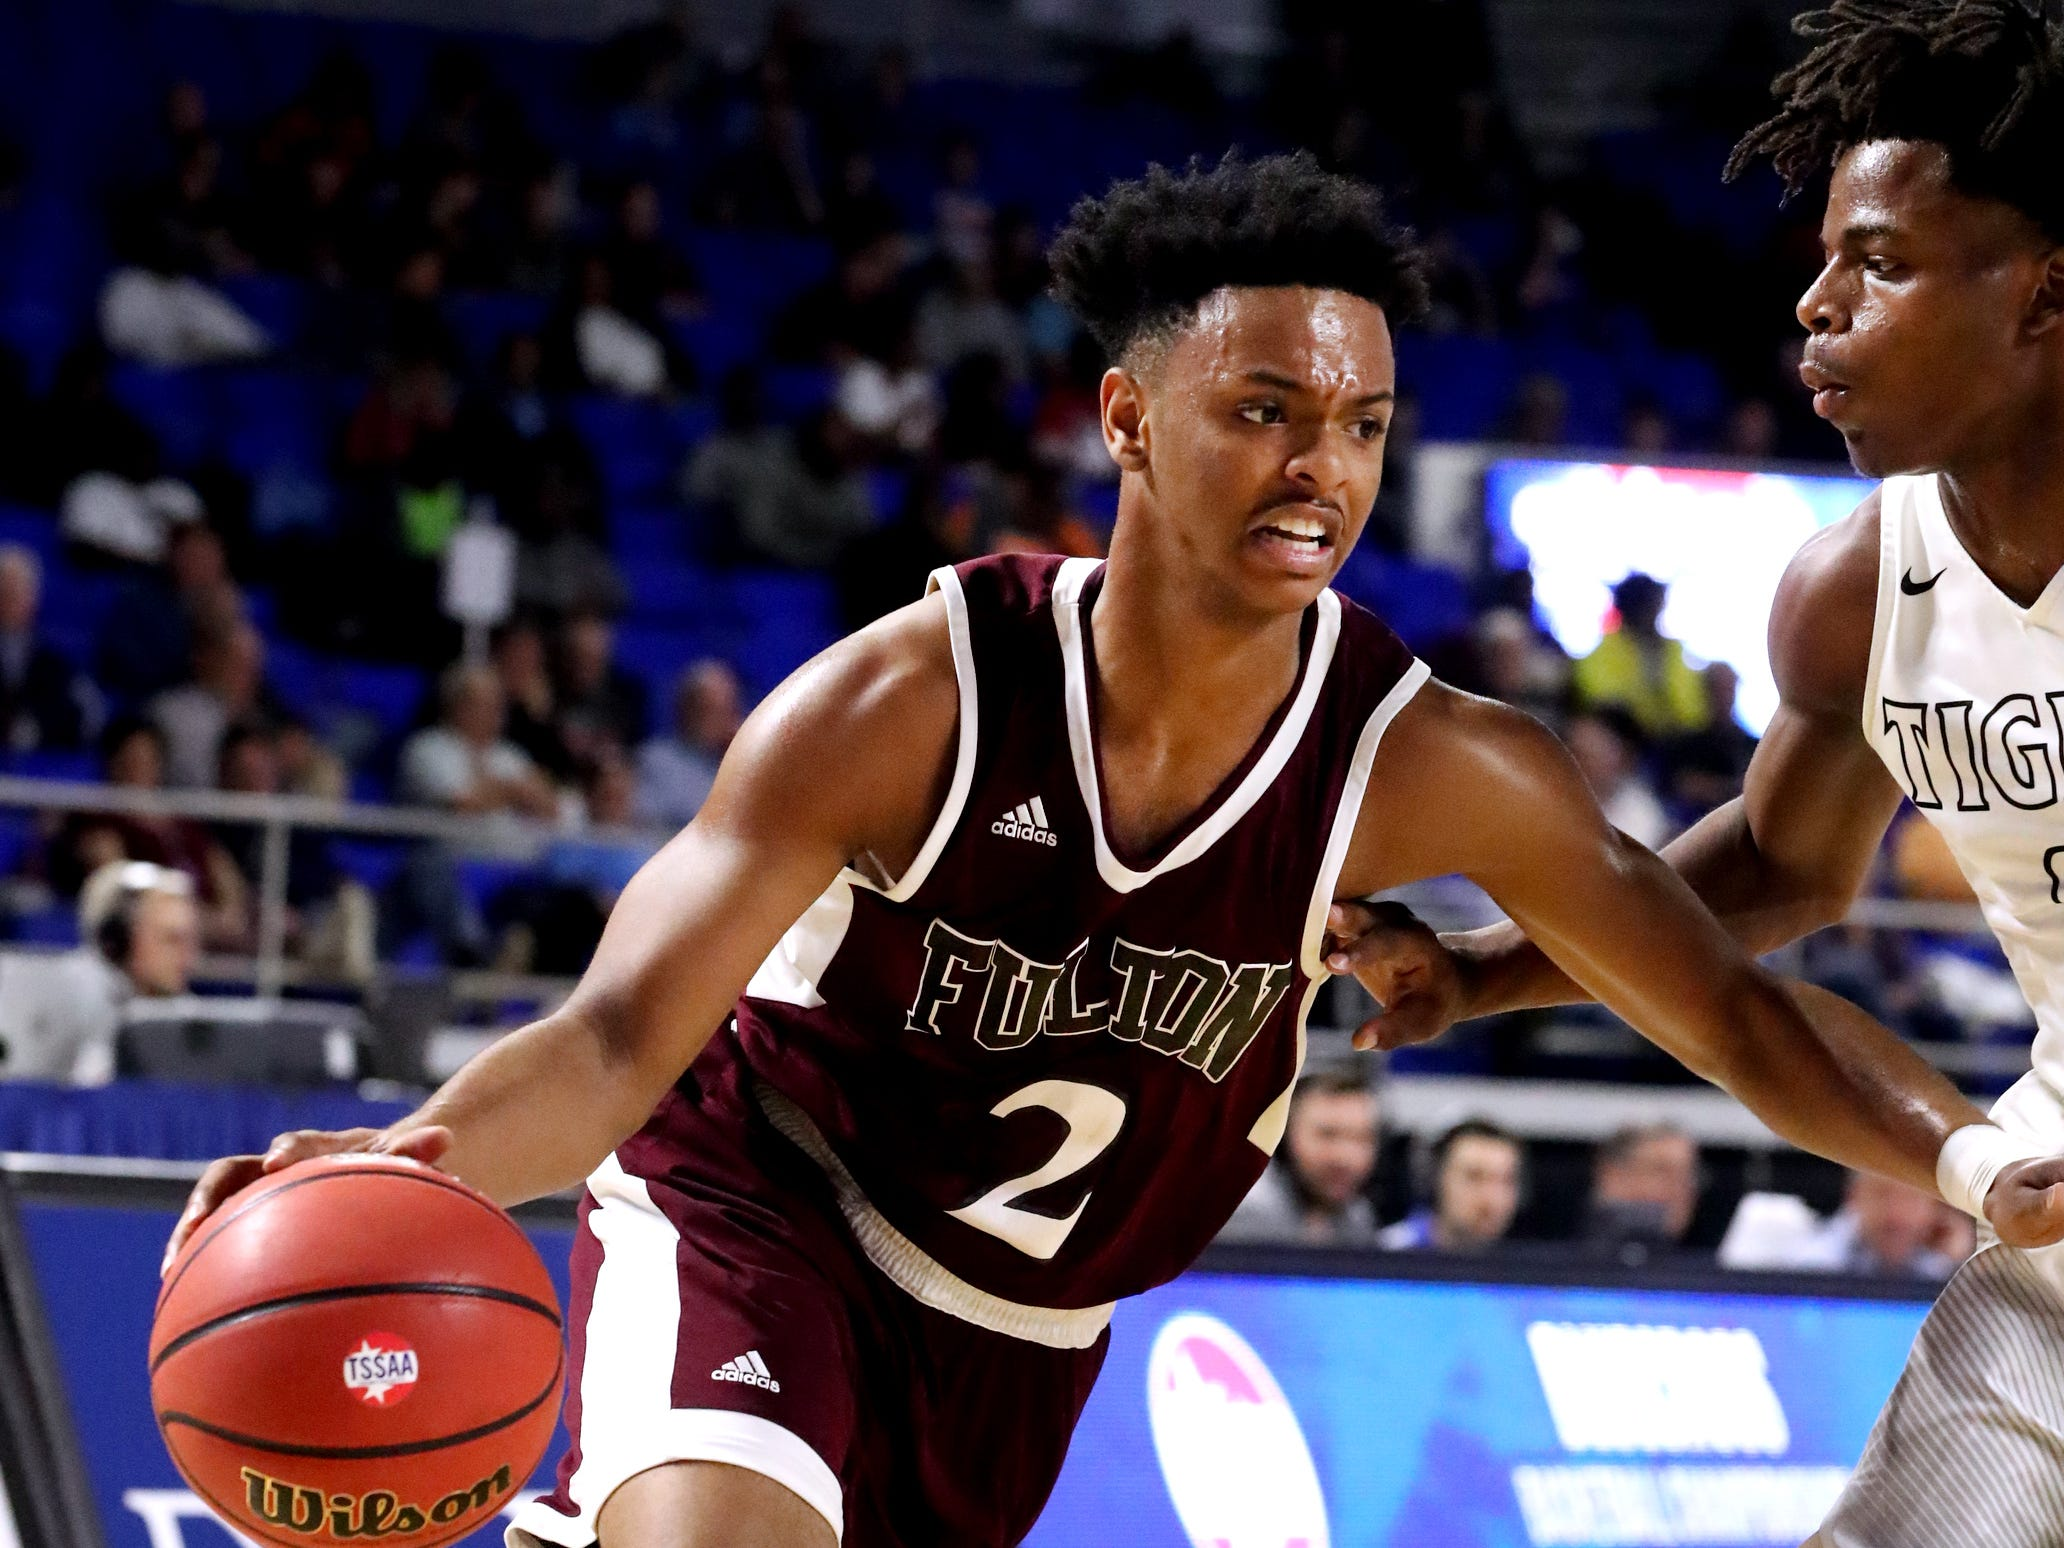 Fulton's Ron Davis III (2) drives to the basket around Mitchell's Michael Rice (0) during the quarterfinal round of the TSSAA Class AA Boys State Tournament, on Wednesday, March 13, 2019, at Murphy Center in Murfreesboro, Tenn.